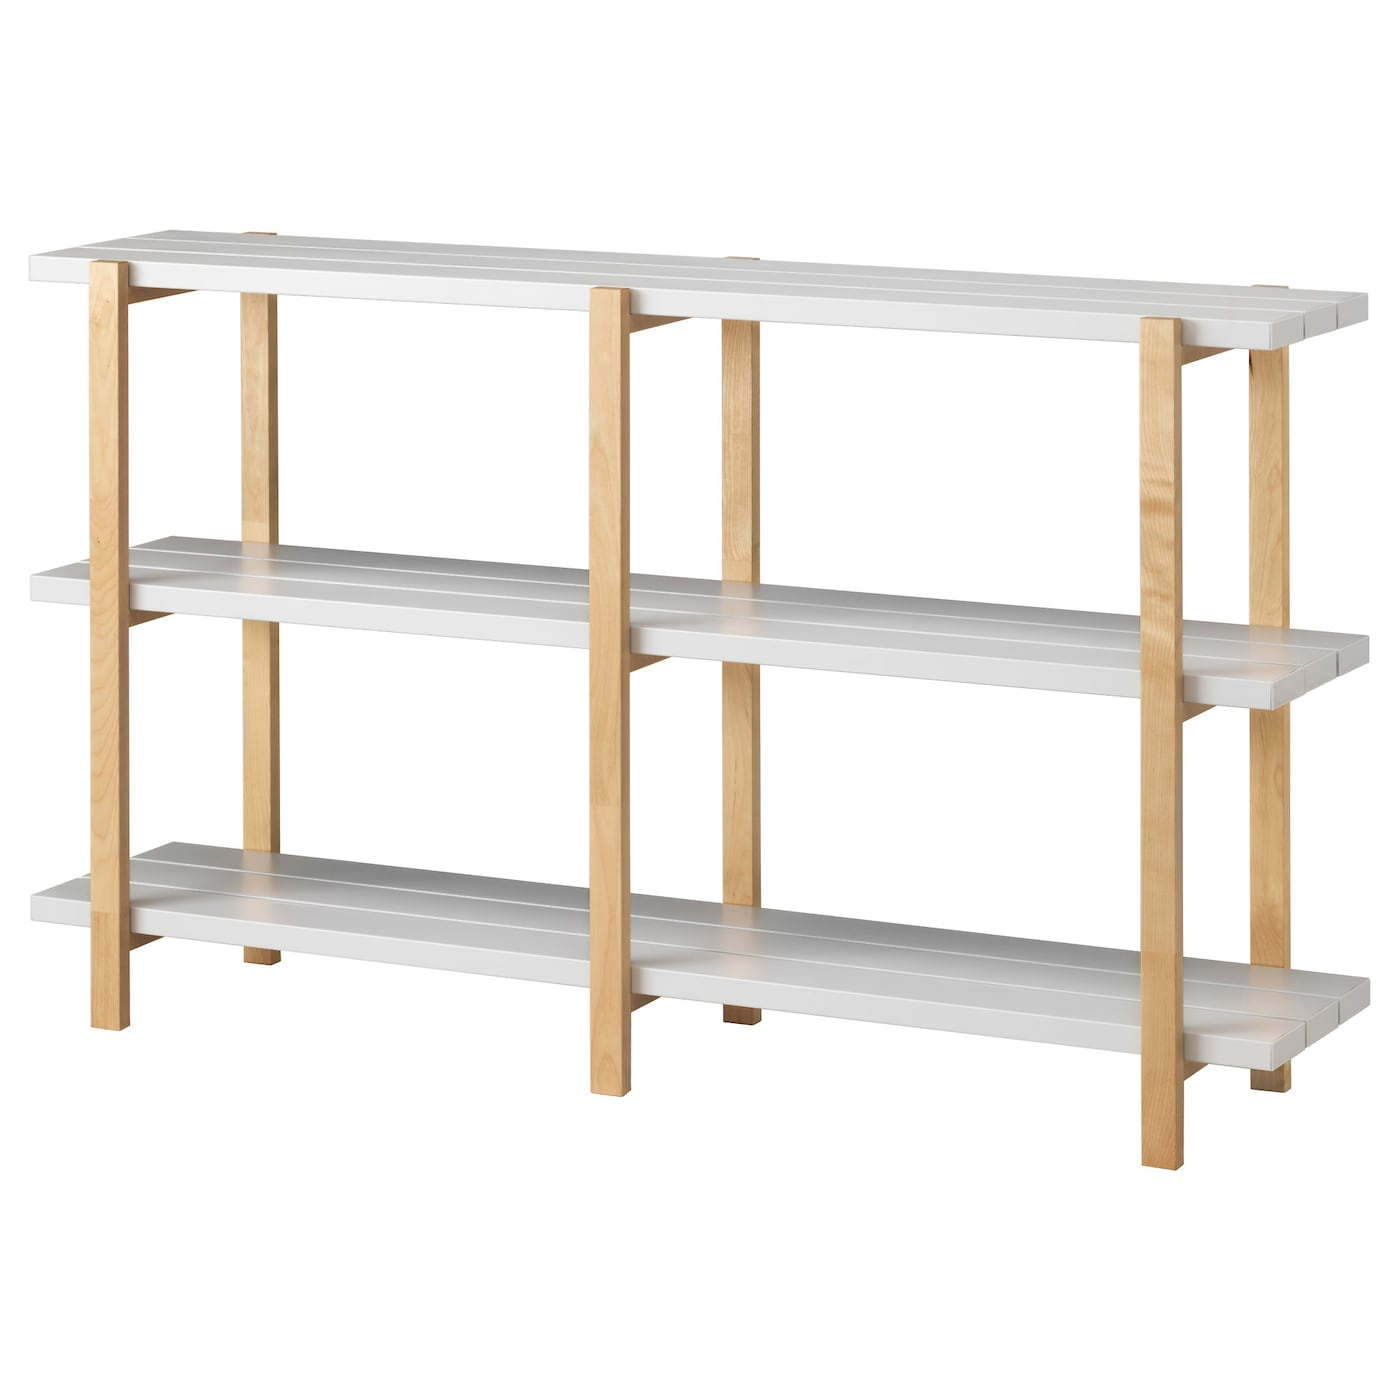 IKEA YPPERLIG shelving unit Solid birch is a hard-wearing natural material.